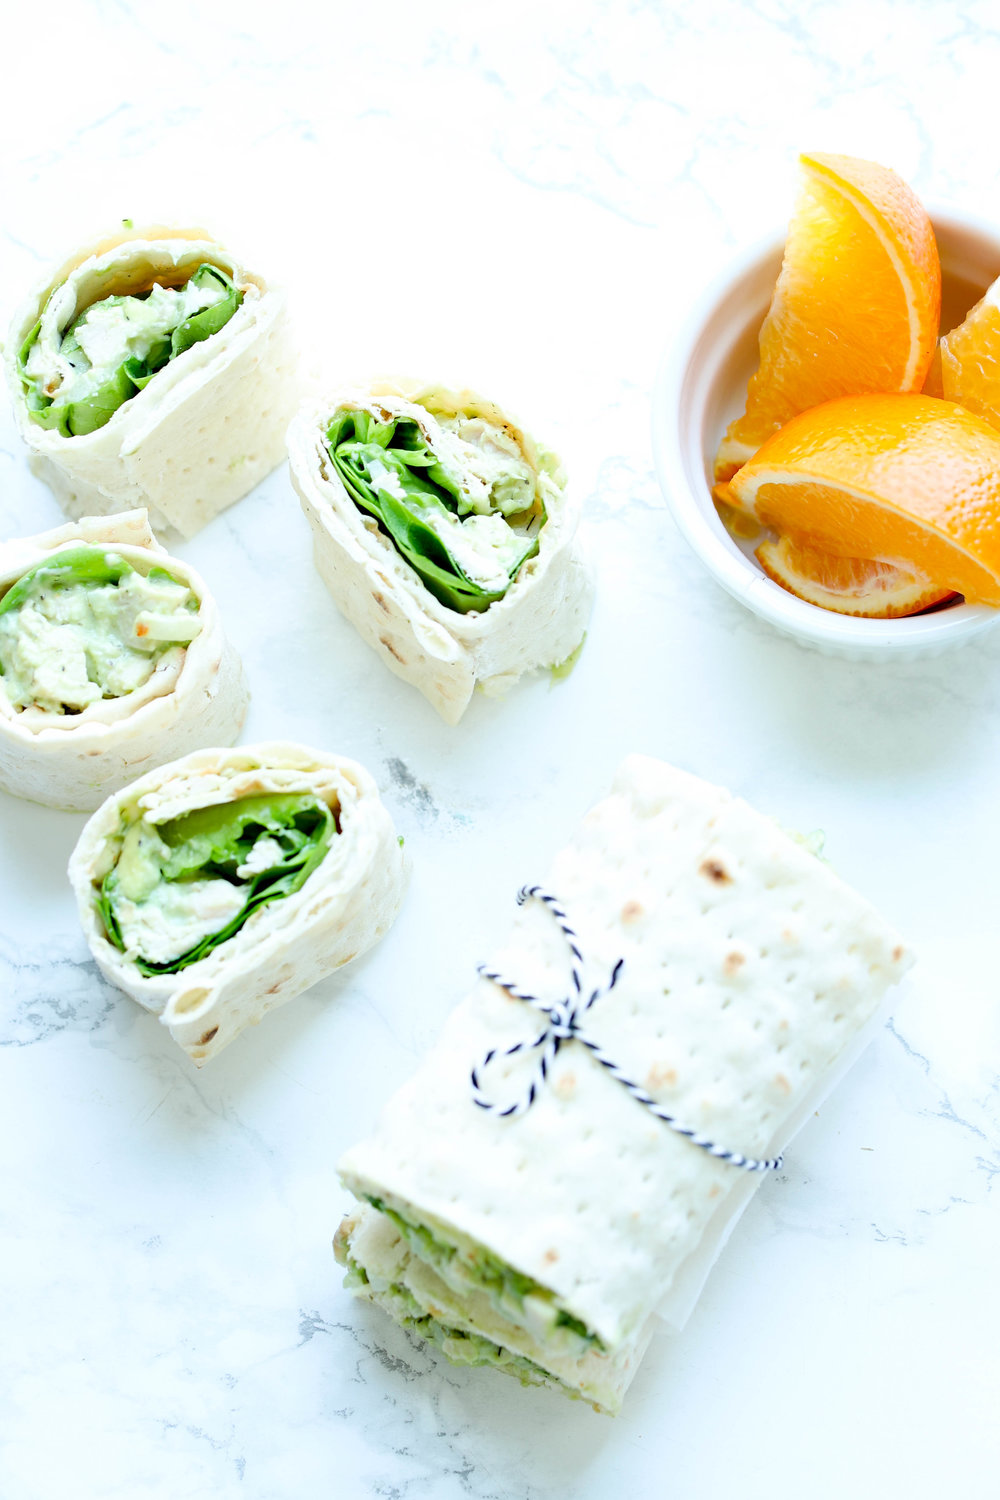 Lunchbox Chicken Avocado Salad Wrap is a healthier take on classic chicken salad. It is quick & packed with healthy fats, and protein for your lunchbox.